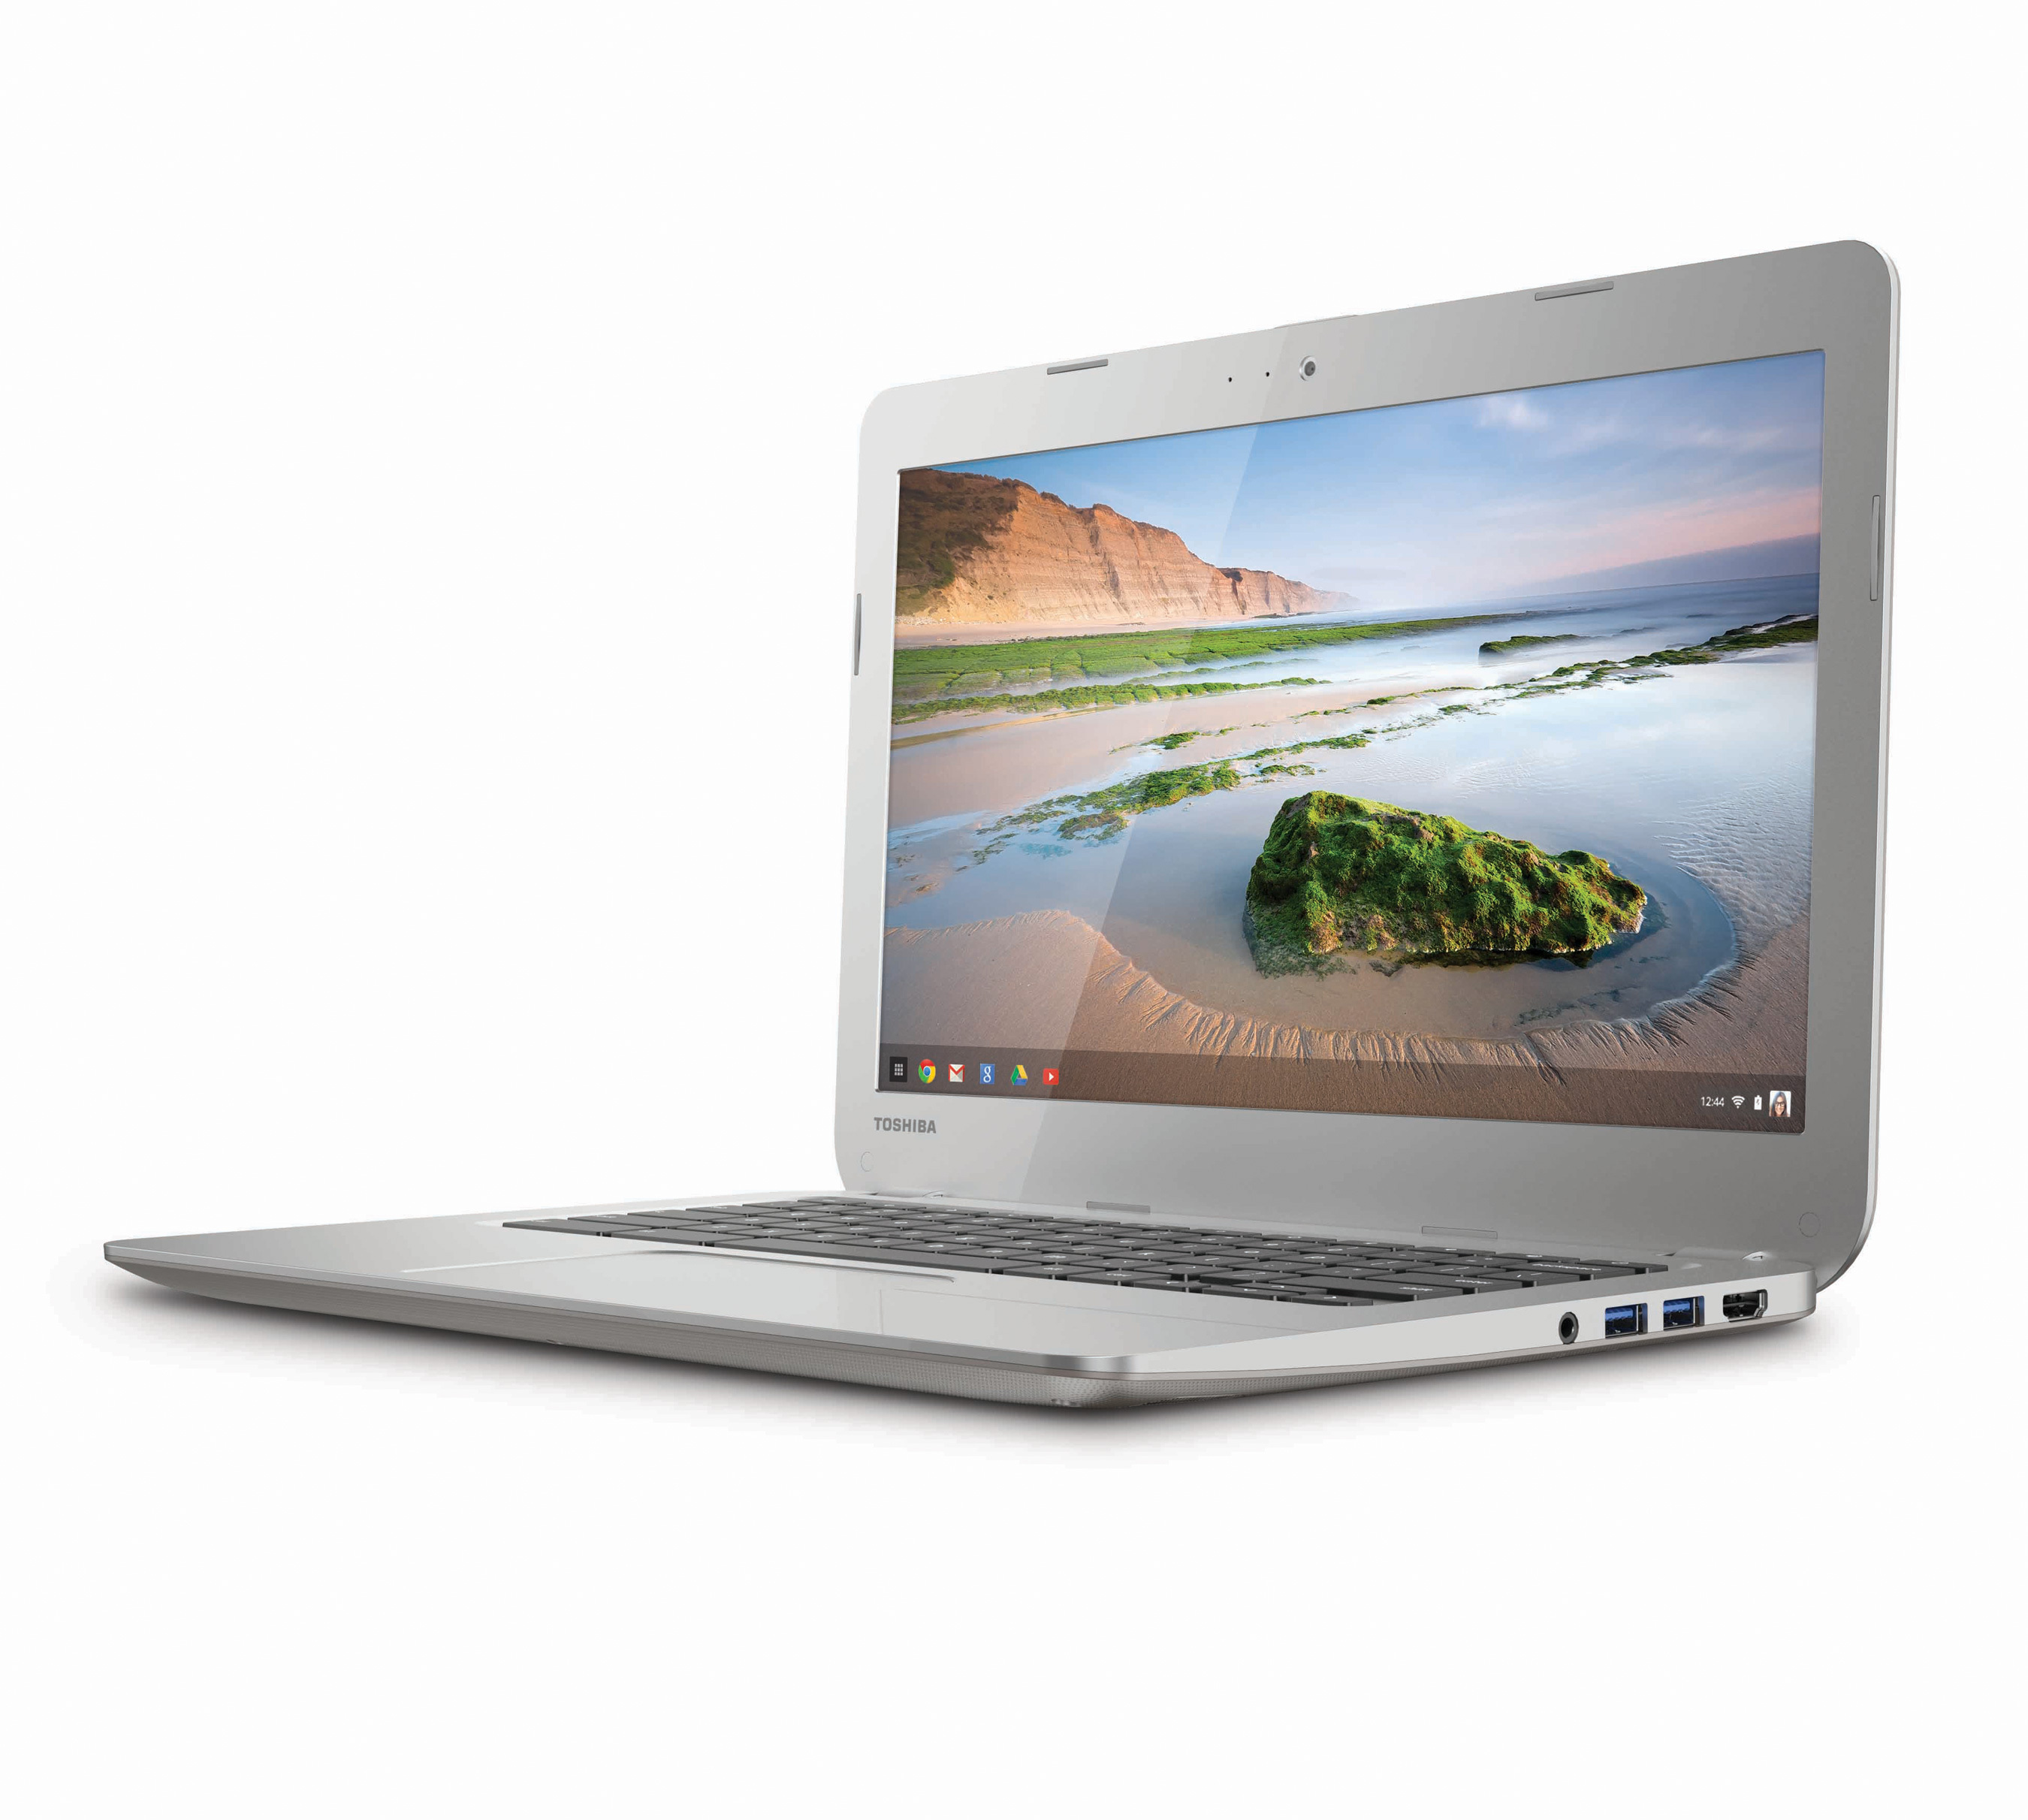 Toshiba Chromebook: 13.3″ display, a Haswell processor and 16GB SSD, for $279.99 from February 16